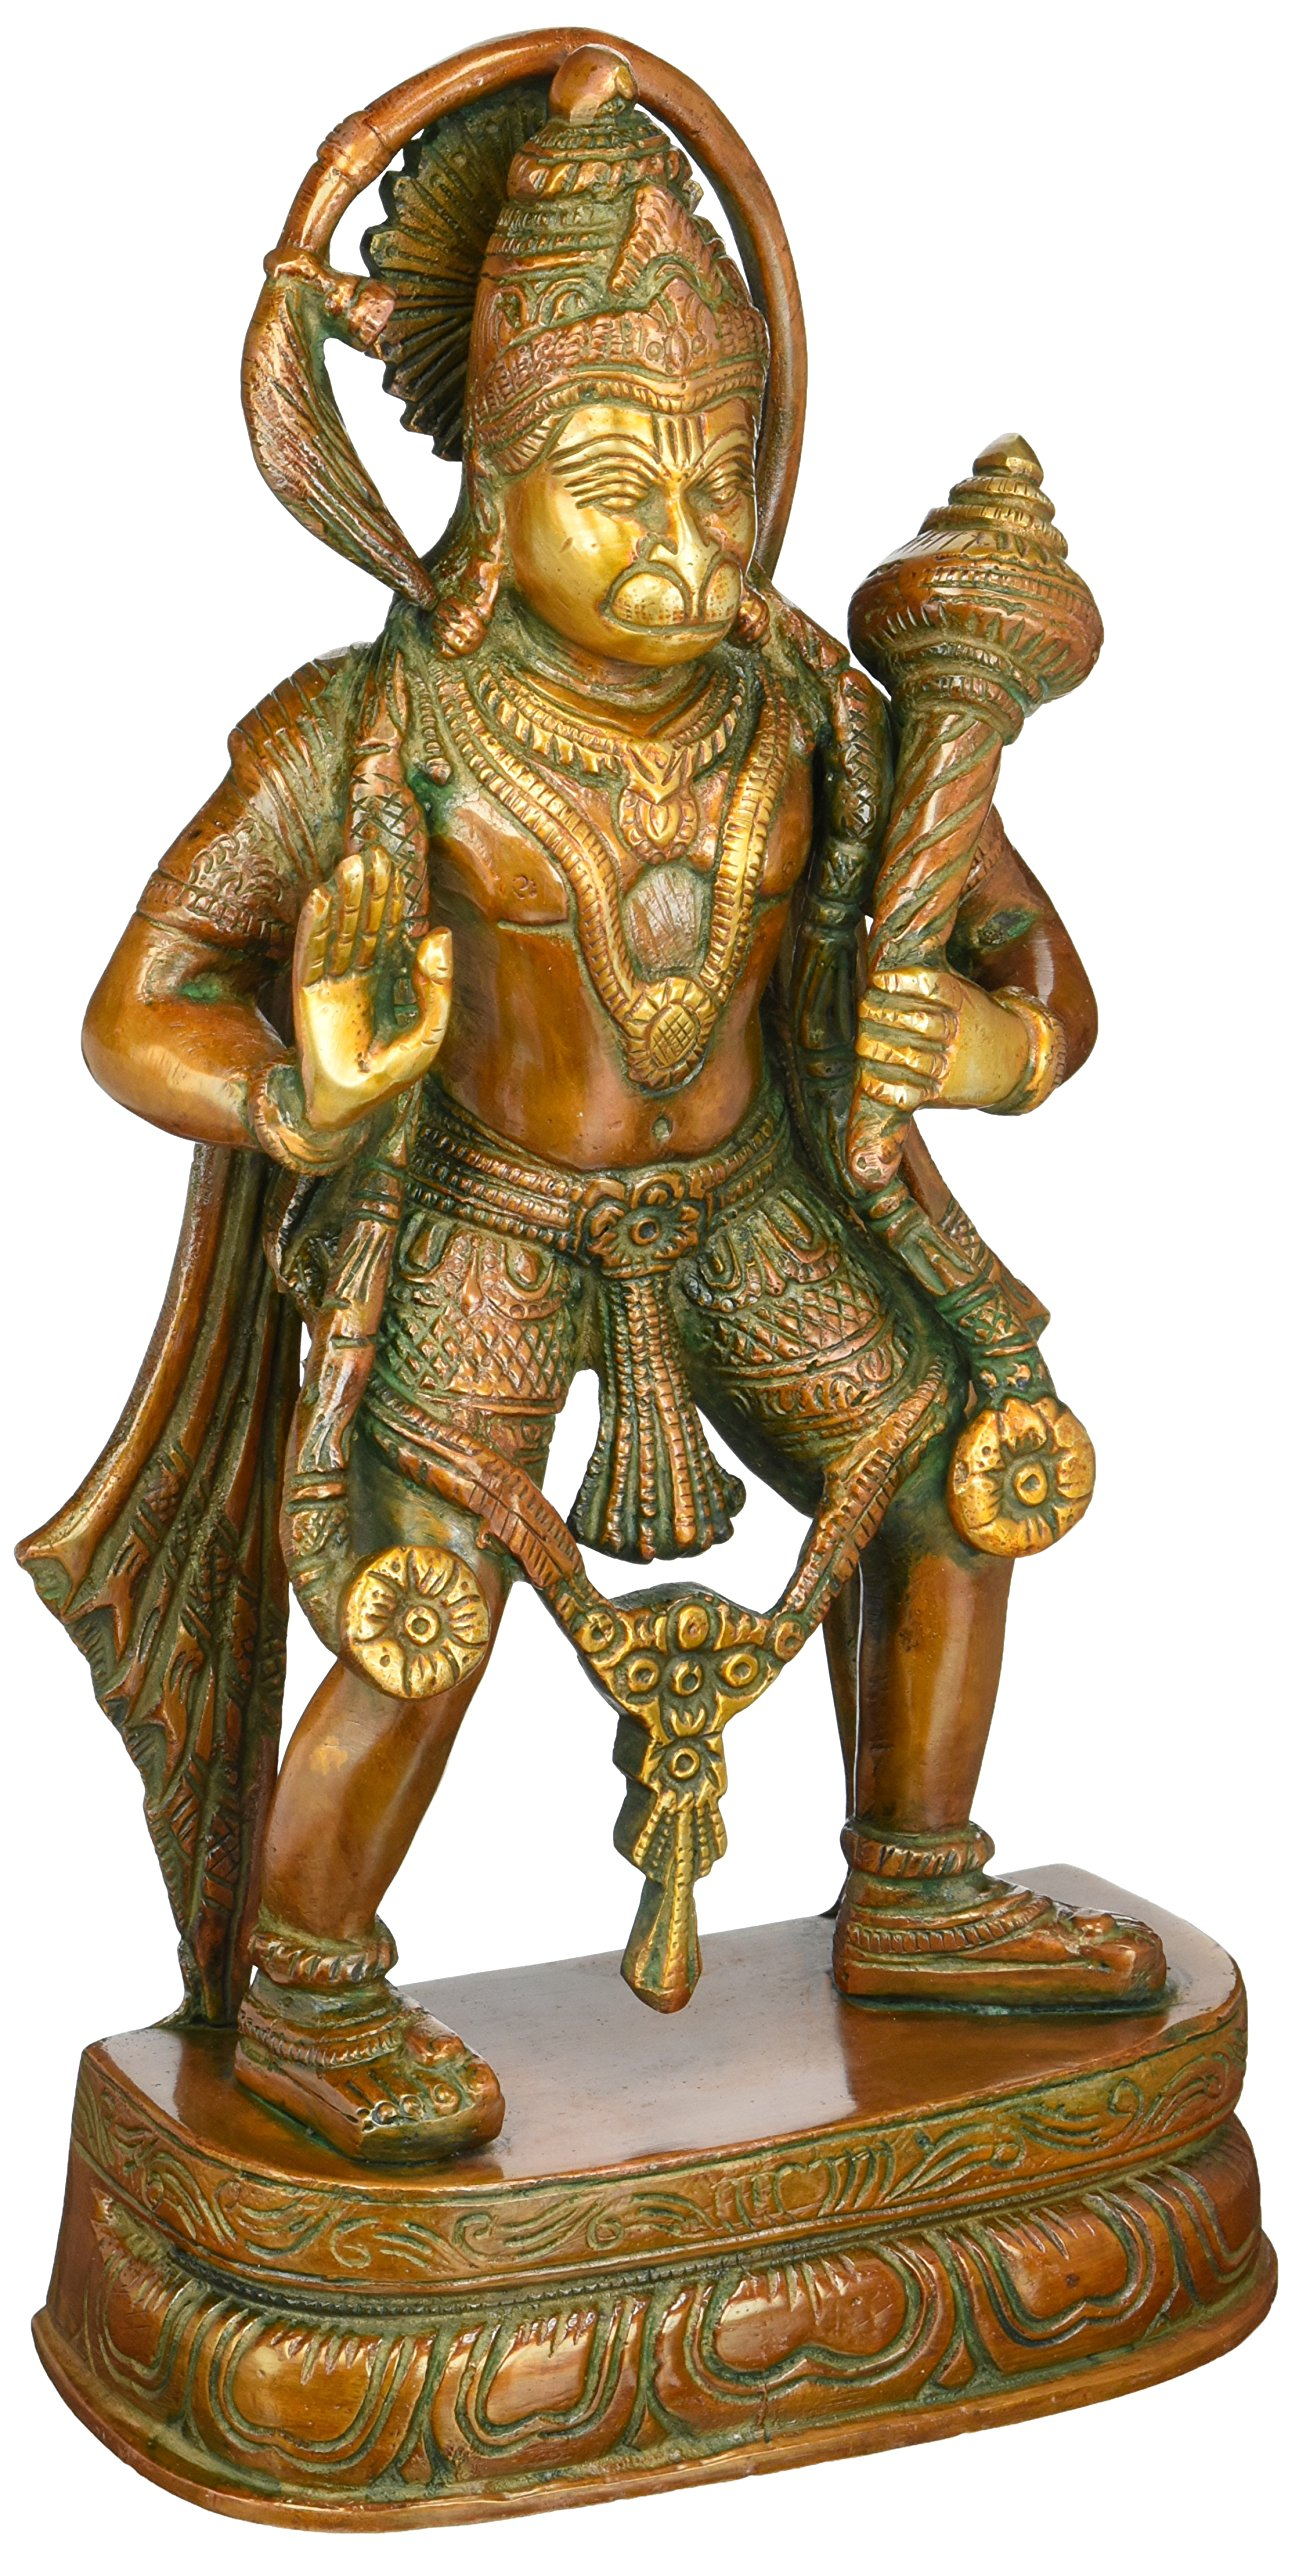 Hanuman Statue - 11 inches Brass Statue of Lord Hanuman a Hindu God by Lotus Sculpture Imported from India